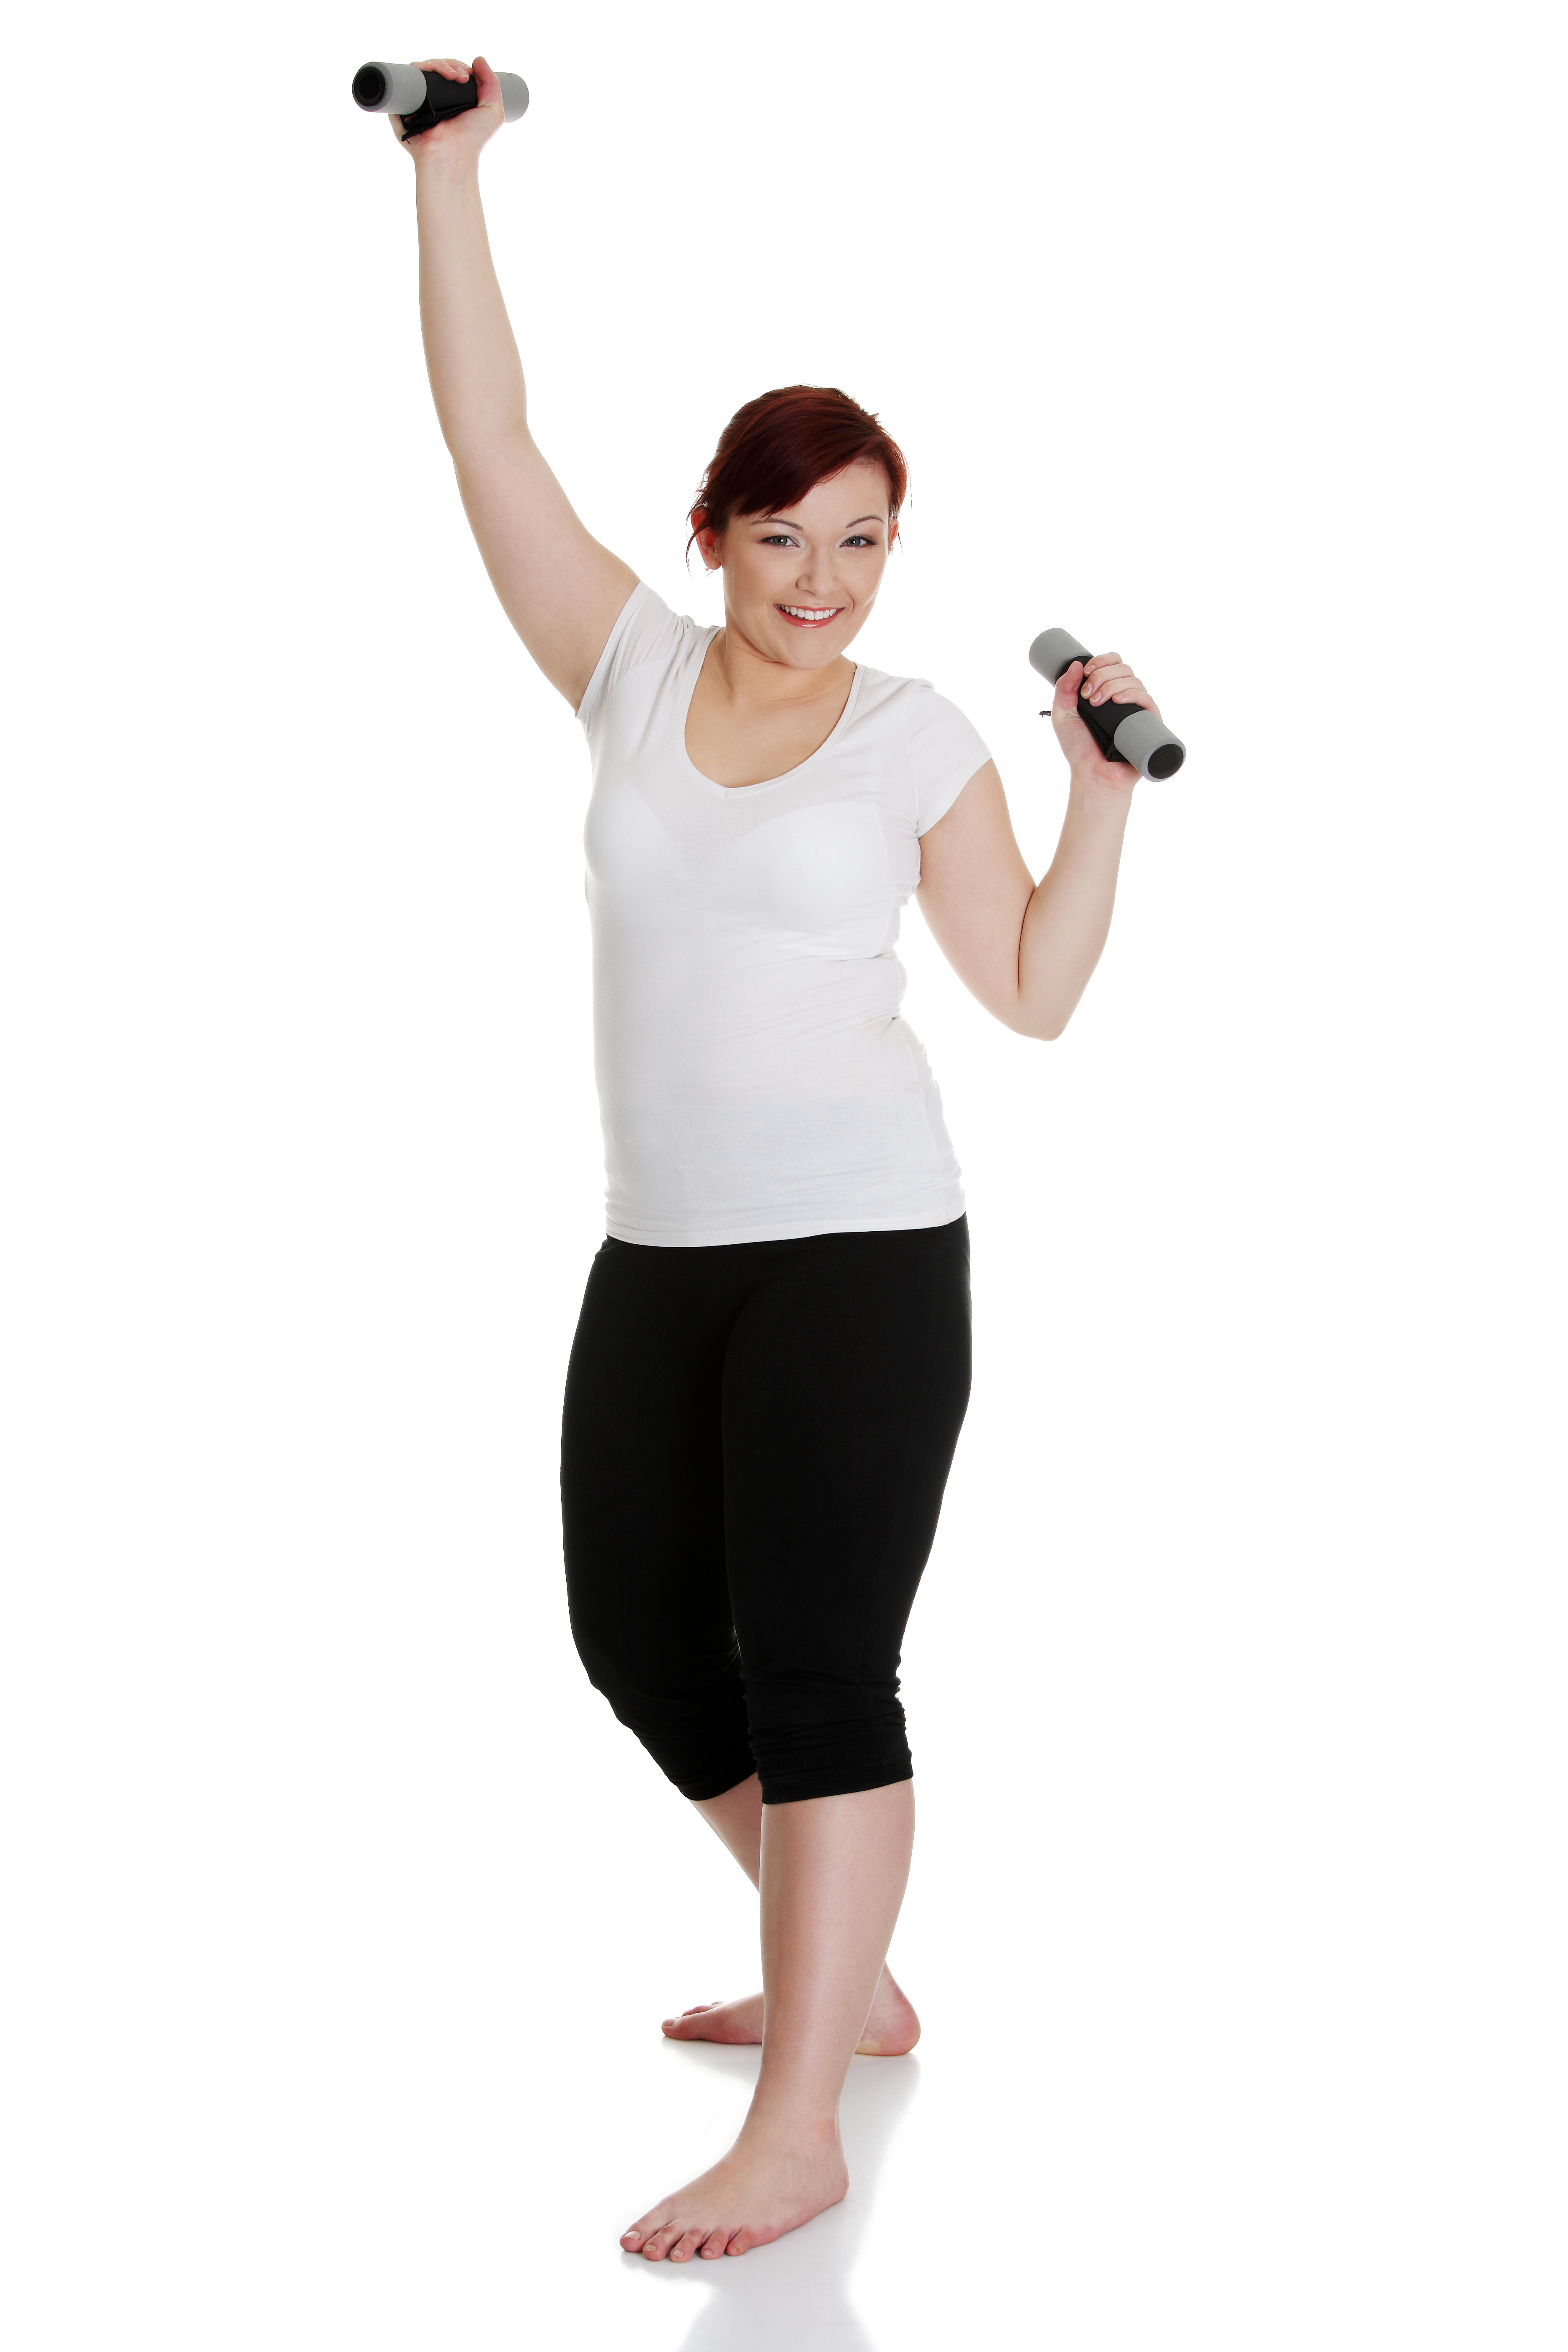 how to lose weight quickly at home without exercise